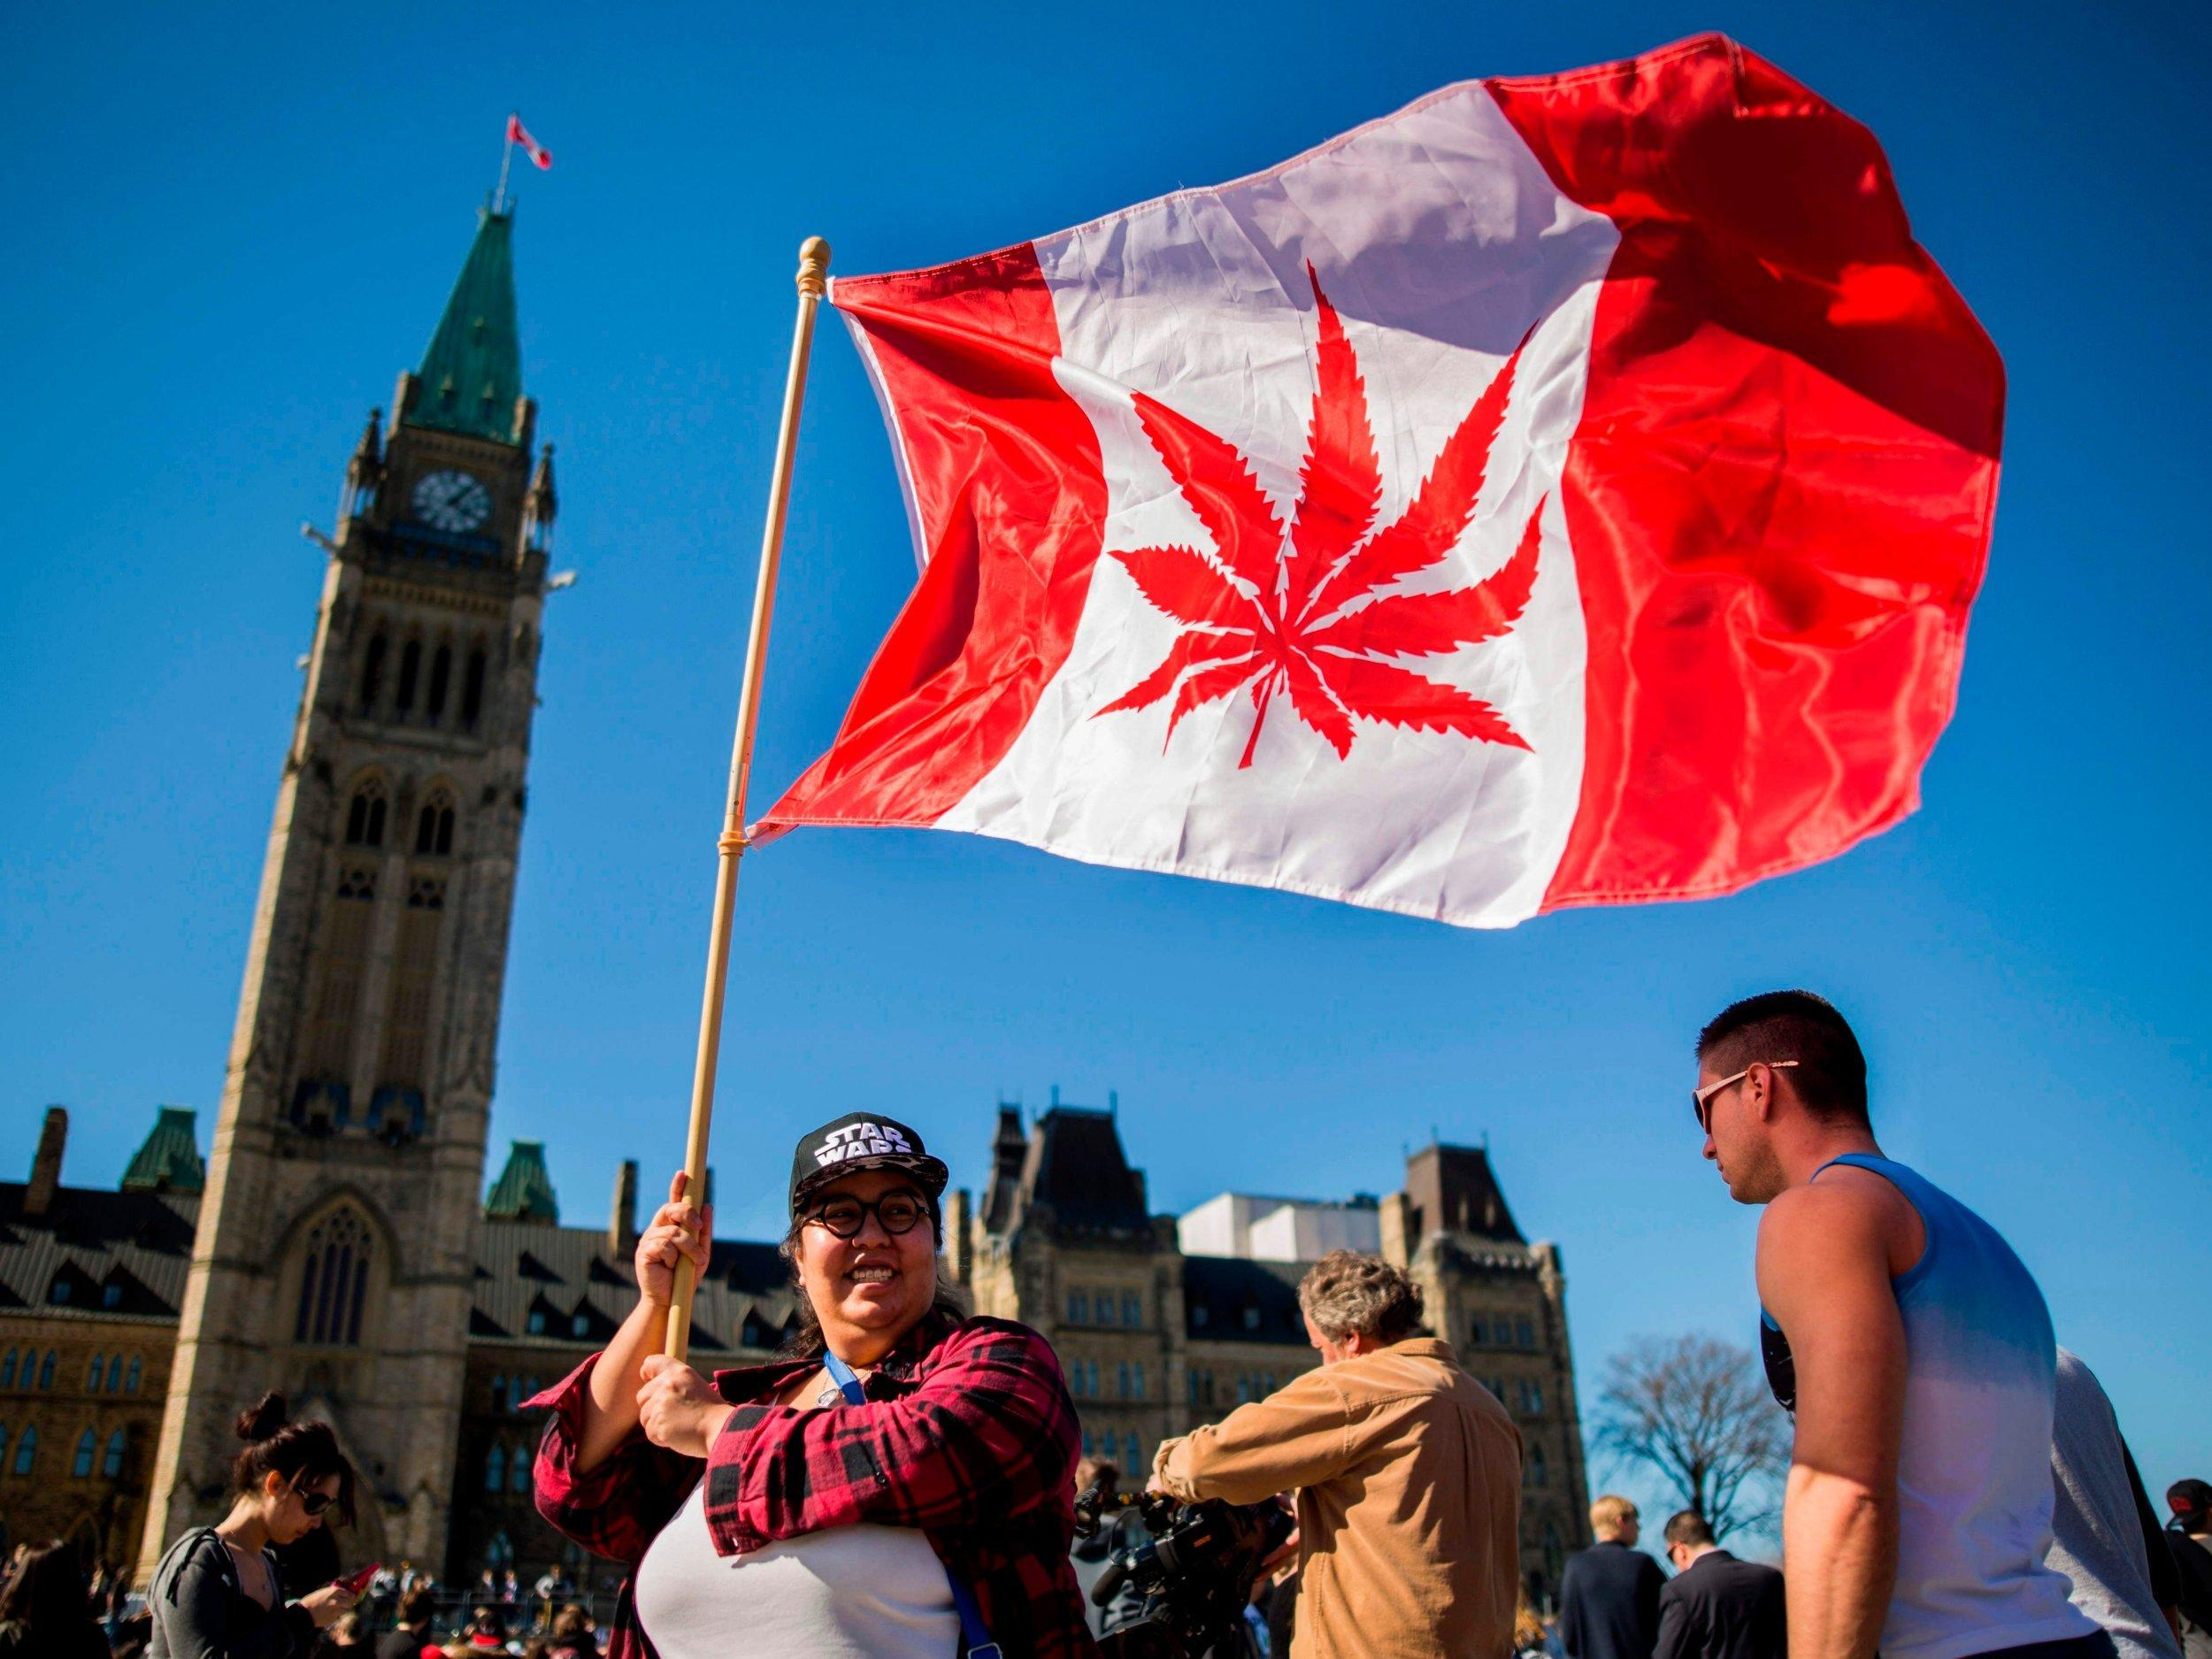 """Canada is set to become the largest country in the world to legalise marijuana for recreational use this week, following Uruguay's lead earlier this year. A key campaign pledge by the country's Liberal prime minister Justin Trudeau before his 2015 election, he argued that it would reduce the estimated C$6bn (£3.5bn) in profits from cannabis sales pouring into his country's black market. However, the law will vary in each of the country's 10 provinces and three territories as each will be able to interpret the rules differently.Here is everything you need to know about the landmark legislation. What are the new marijuana laws in Canada?The new legislation will allow the drug to be purchased from officially recognised shops.As a result it will still be illegal for someone to sell the drug to their friends, even in small amounts, if they do not have a licence.The minimum age for use will be 18 or 19 – a decision which will be left to the provinces and territories to decide locally.Giving the drug to a minor will remain a crime and could result in a maximum sentence of 14 years imprisonment.In most provinces, people will be allowed to possess up to 30 grams of marijuana. But this will differ across the country. People in Quebec for example, will be allowed to have up to 150 grams at home. Which other countries have legalised marijuana?The only other country to fully legalise recreational marijuana is Uruguay, which introduced the law in 2013.The drug is also decriminalised for personal use in both Portugal and the Netherlands.Cannabis is also legal in nine US states and the country's Washington DC. A further 13 states have decriminalised its use. Will the UK legalise marijuana?Steve Rolles, a drug policy expert from the Transform think-tank, believes that the UK will legalise recreational cannabis within five years.He said: """"The tide has turned. Canada is a G7 nation and one of the largest commonwealth countries. We expect the UK and many others to follow suit in the ne"""